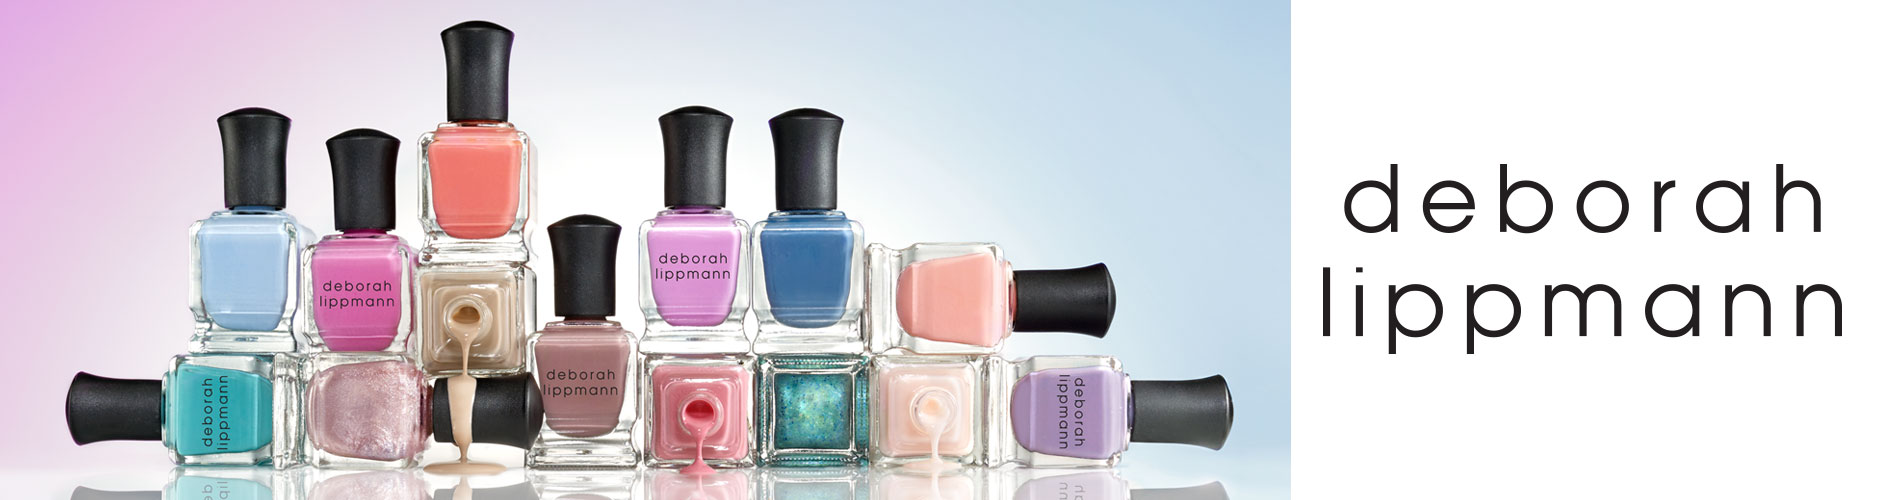 Deborah Lippmann Nailpolish & Nail Treatments at Neiman Marcus